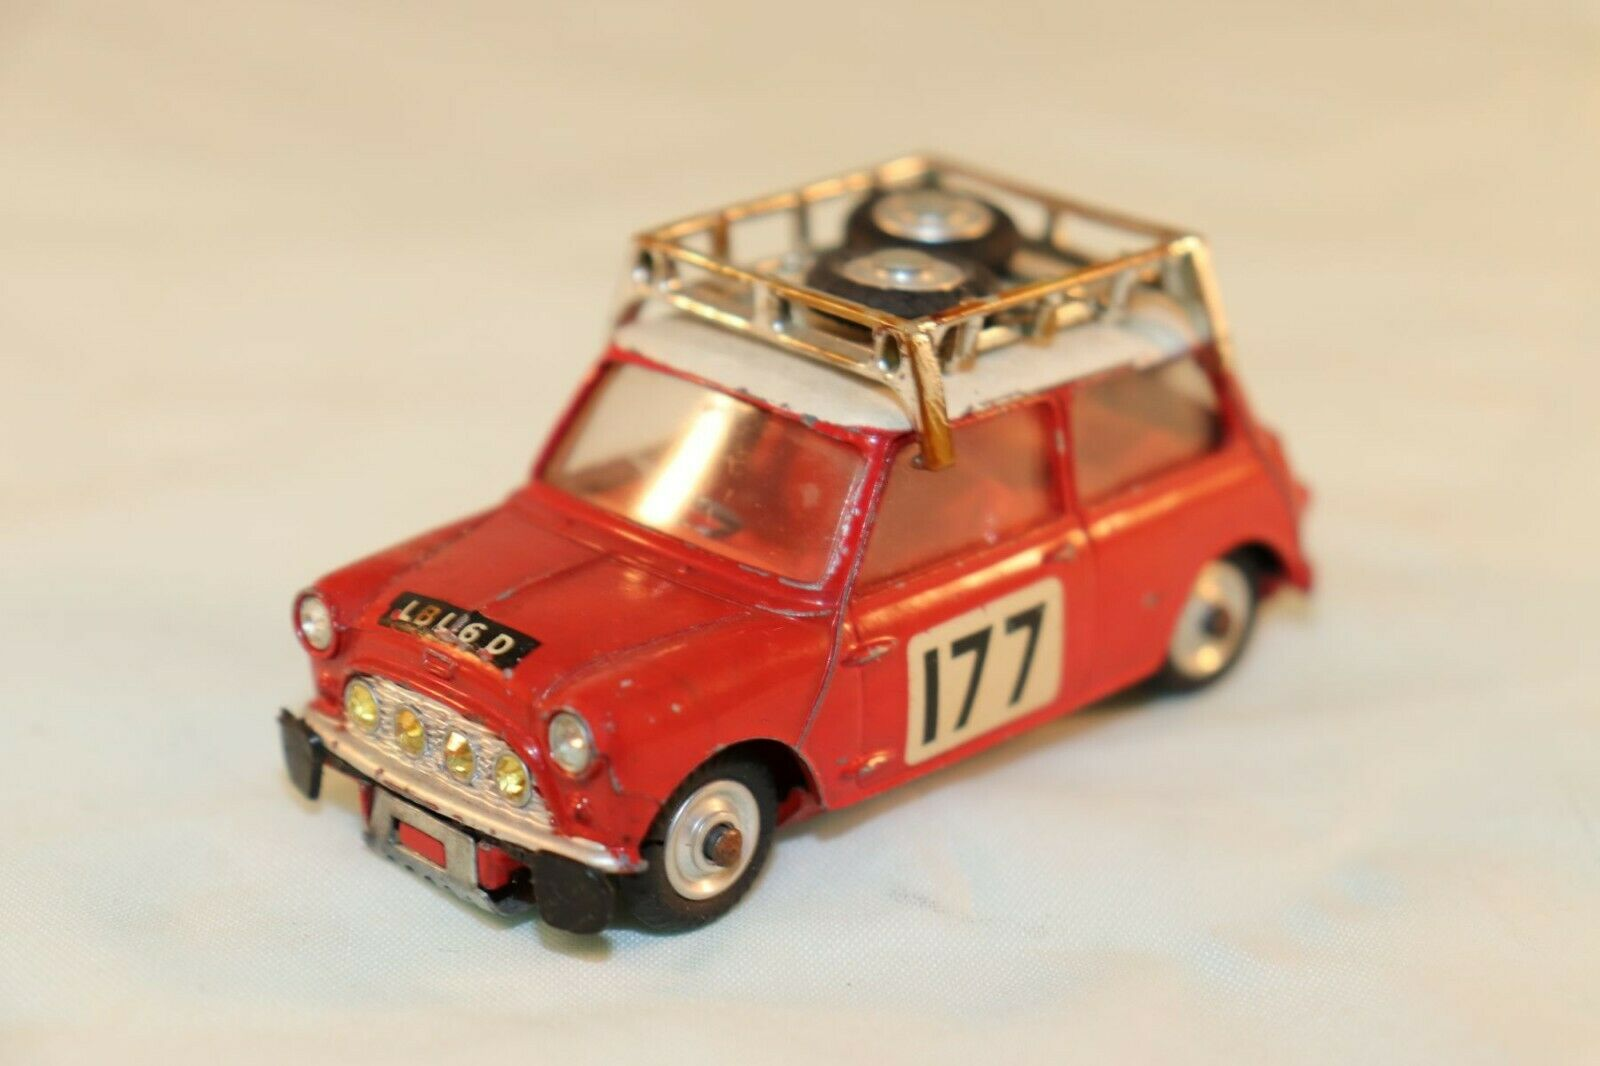 Corgi Toys 339 BMC Mini Cooper S Monte carlo excellent plus original condition